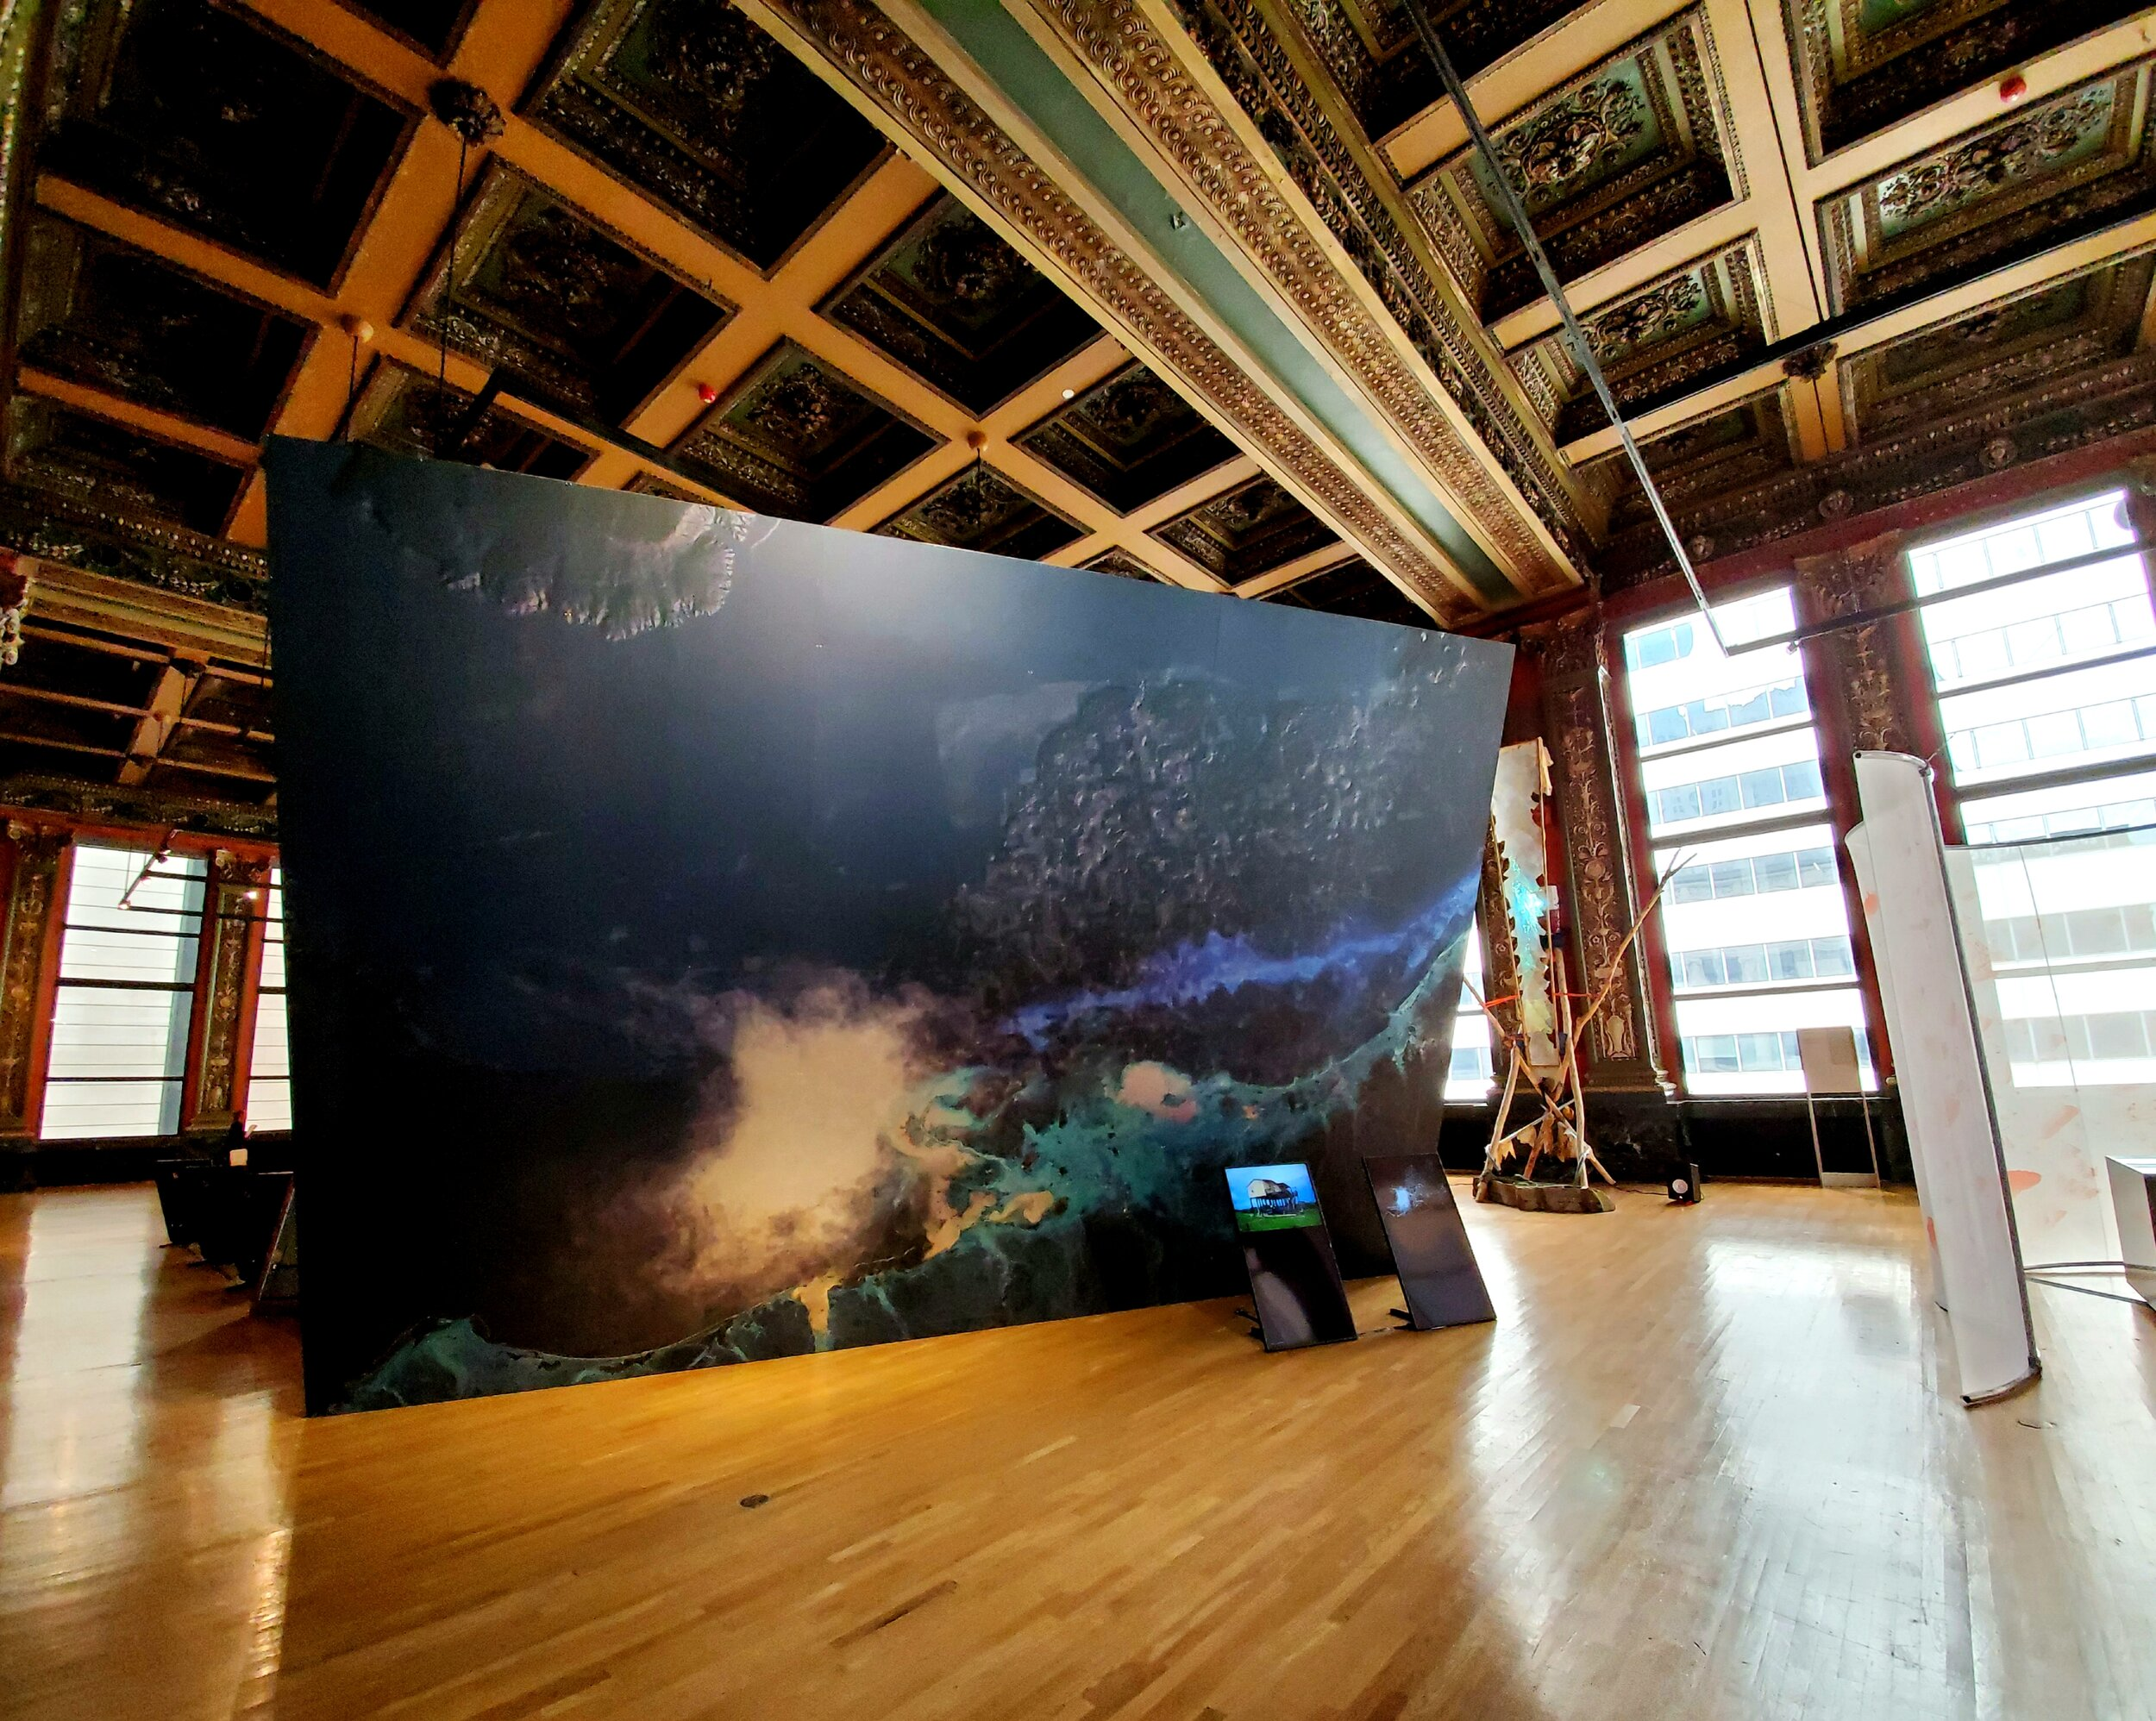 MUSEUM OF OIL: THE AMERICAN ROOMS by Territorial Agency (Ann-Sofi Ronnskog and John Palmesino) at the Chicago Cultural Center.